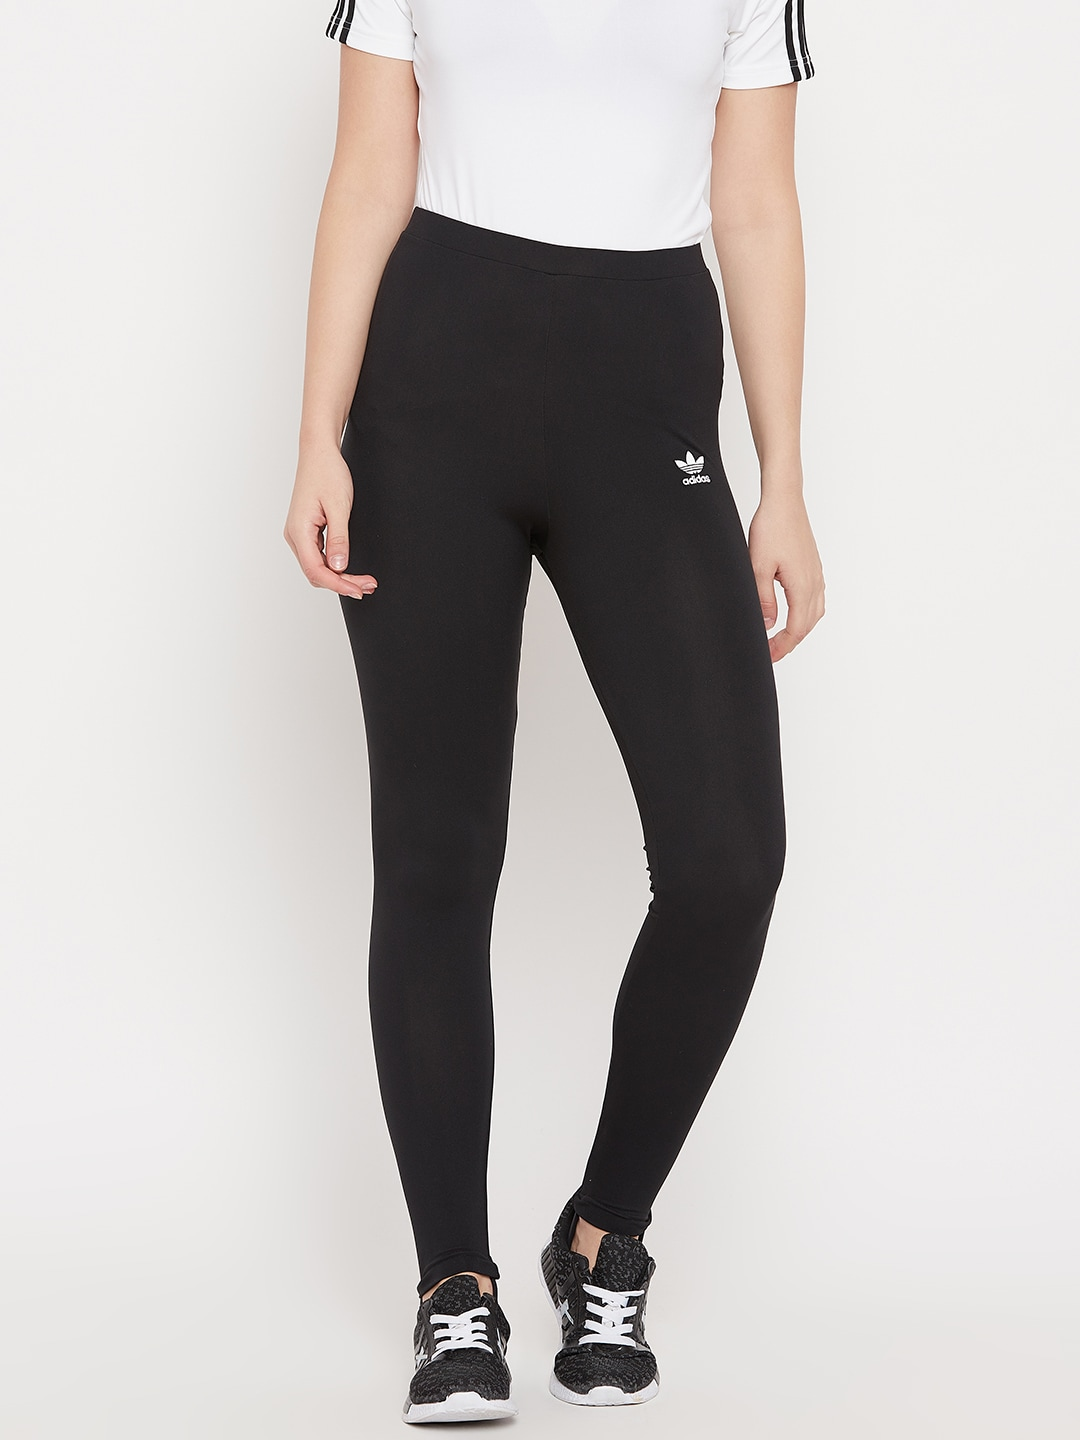 new style 30e4a 73100 Adidas Wristbands Tights Jackets - Buy Adidas Wristbands Tights Jackets  online in India